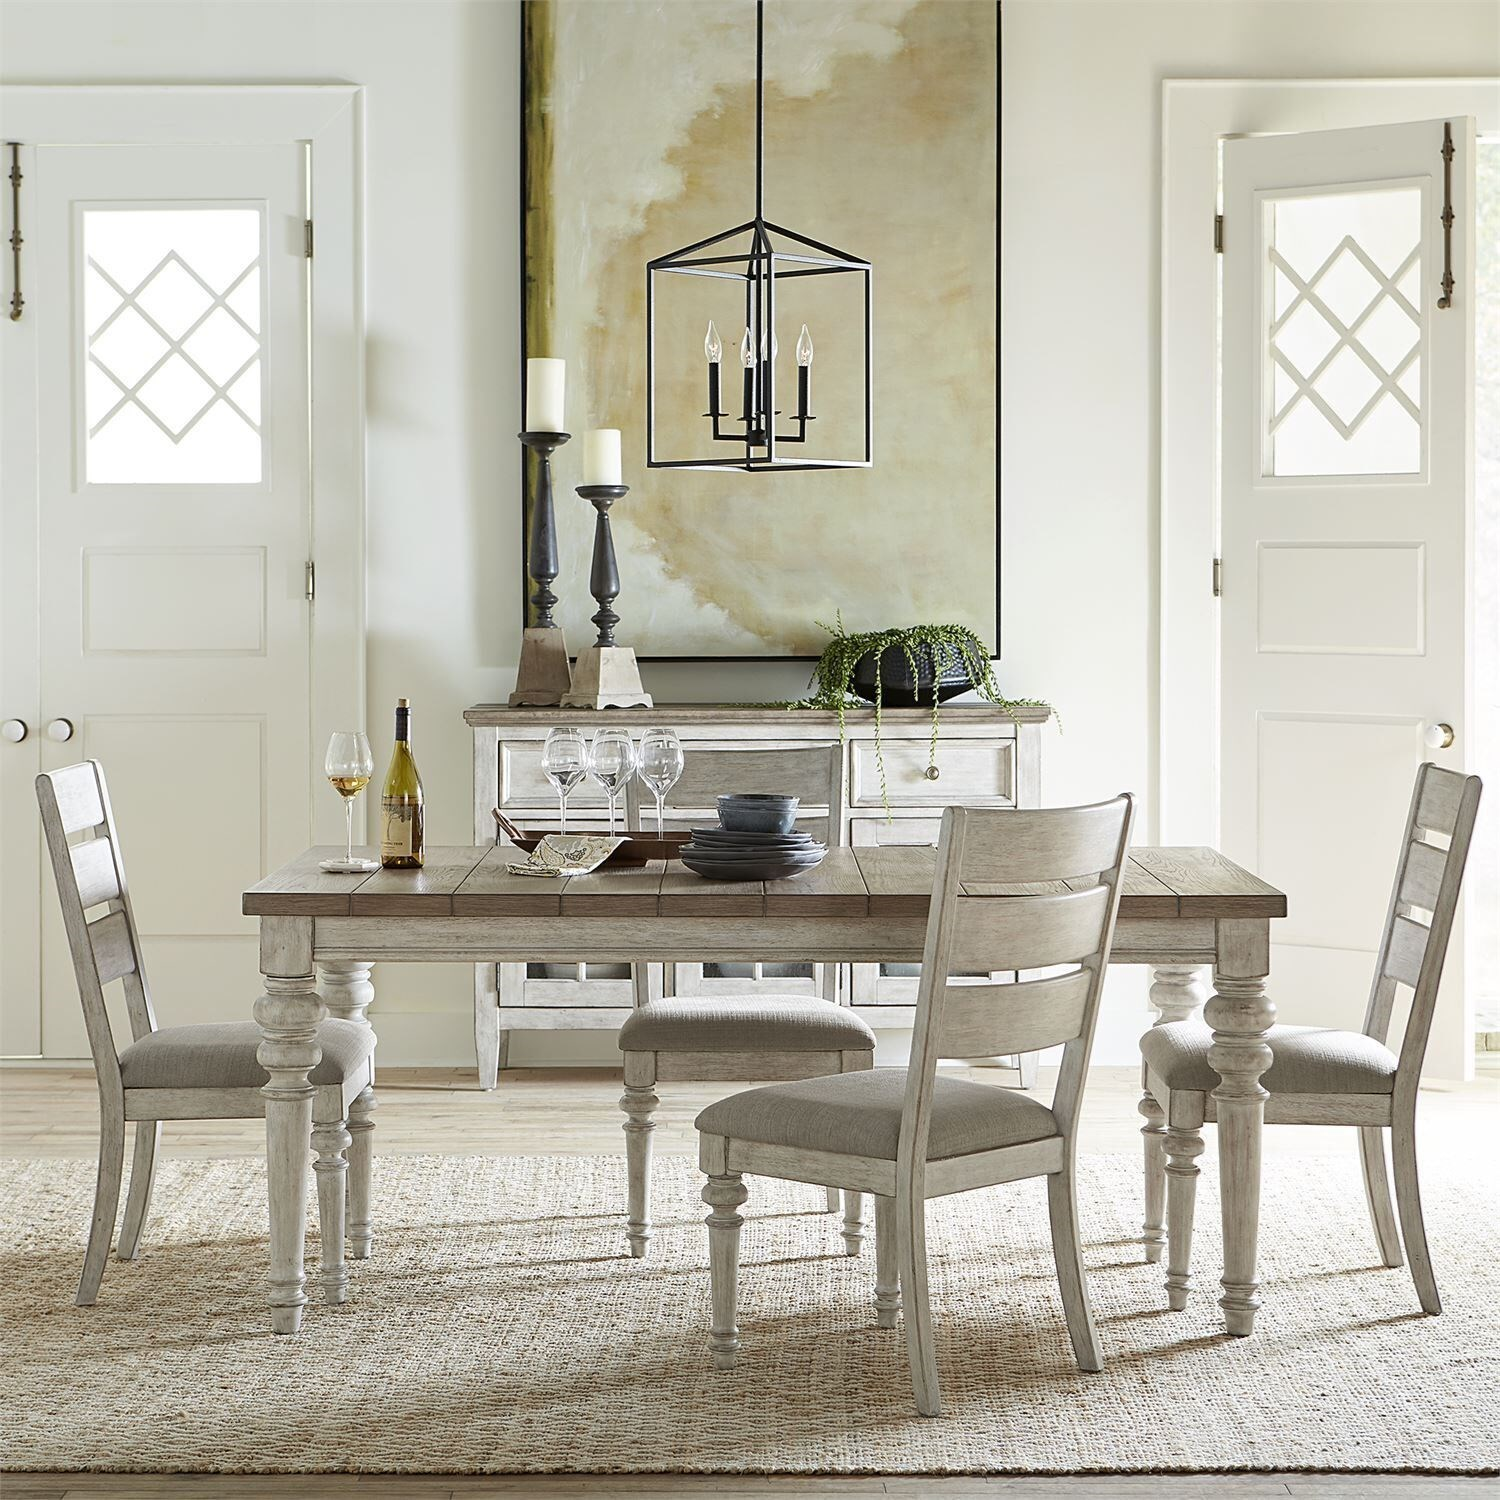 Heartland Dining Room Group by Liberty Furniture at Upper Room Home Furnishings